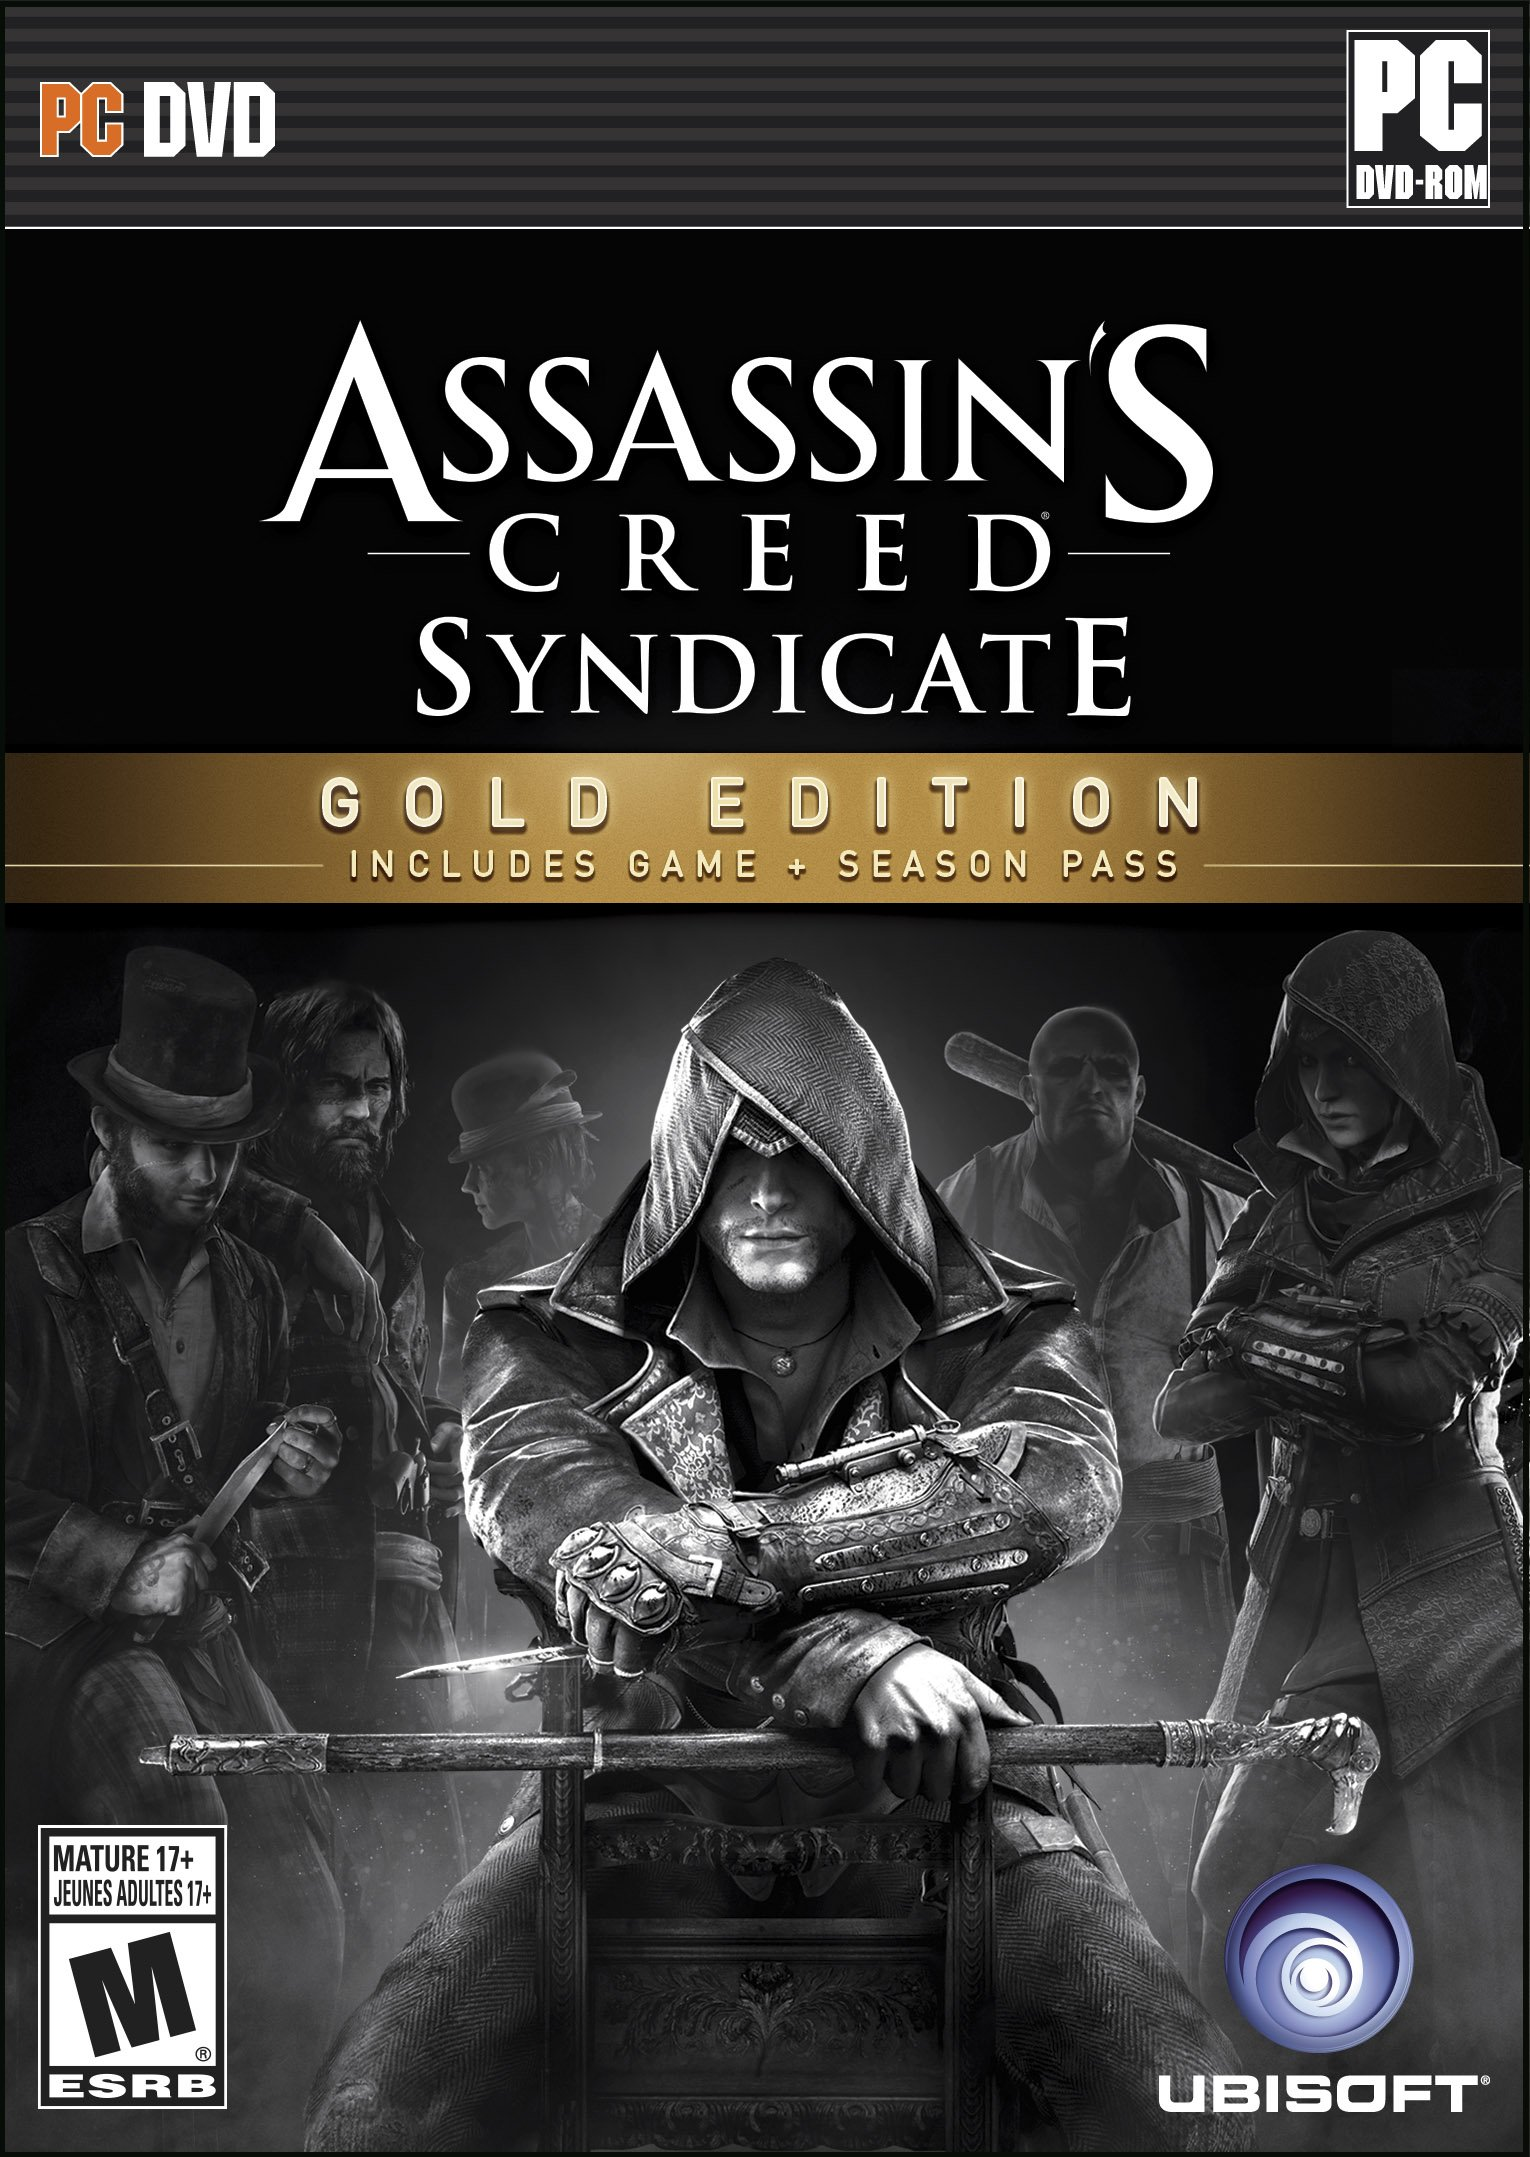 http://img5.downloadha.com/hosein/Game/May%202017/10/Assassins-Creed-Syndicate-Gold-Edition-pc-cover-large.jpg